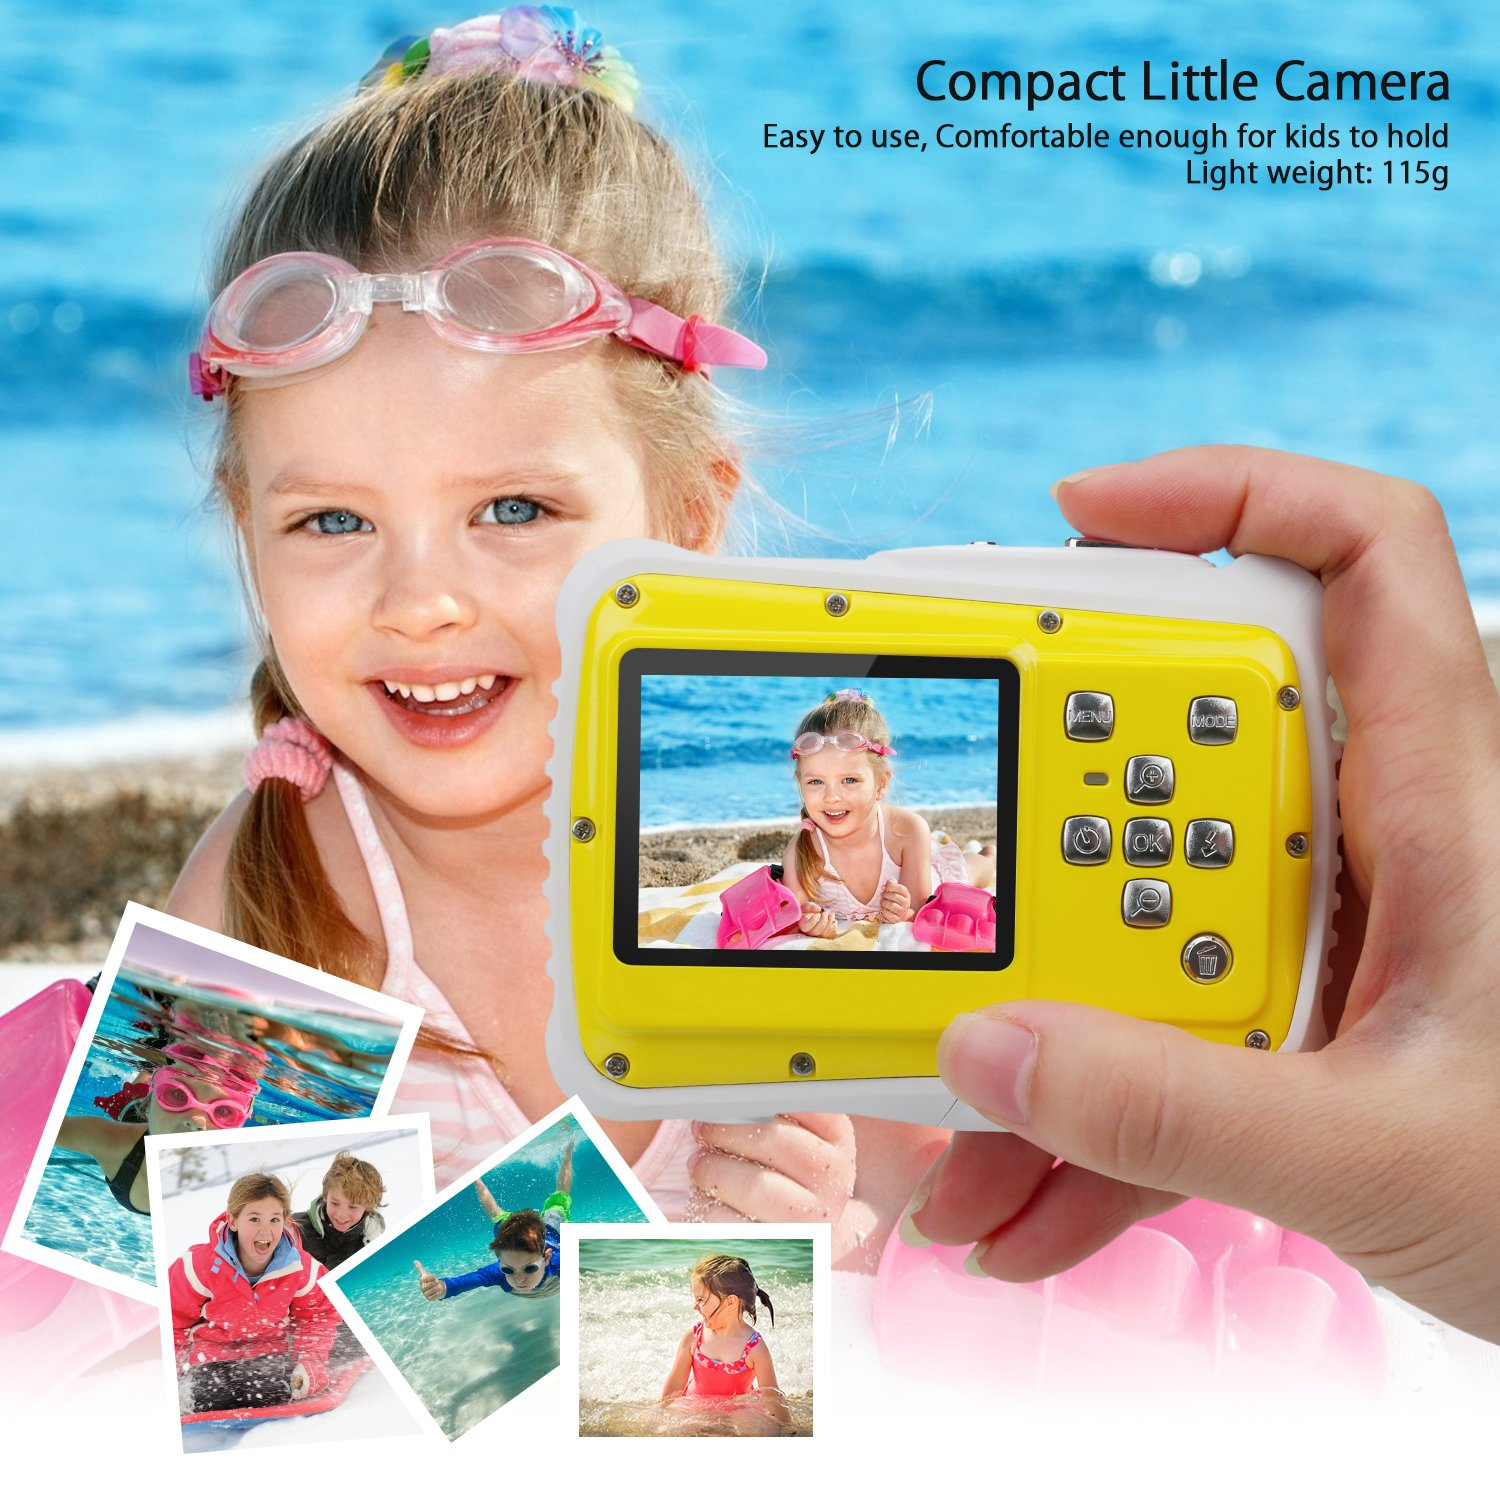 BOMEON Waterproof Camera for Kids Underwater Action Camera Camcorder with 12MP HD 8X Digital Zoom Flash Mic 2.0 Inch LCD Display with 8G SD Card 3 Non-Rechargeable Batteries Included by BOMEON (Image #6)